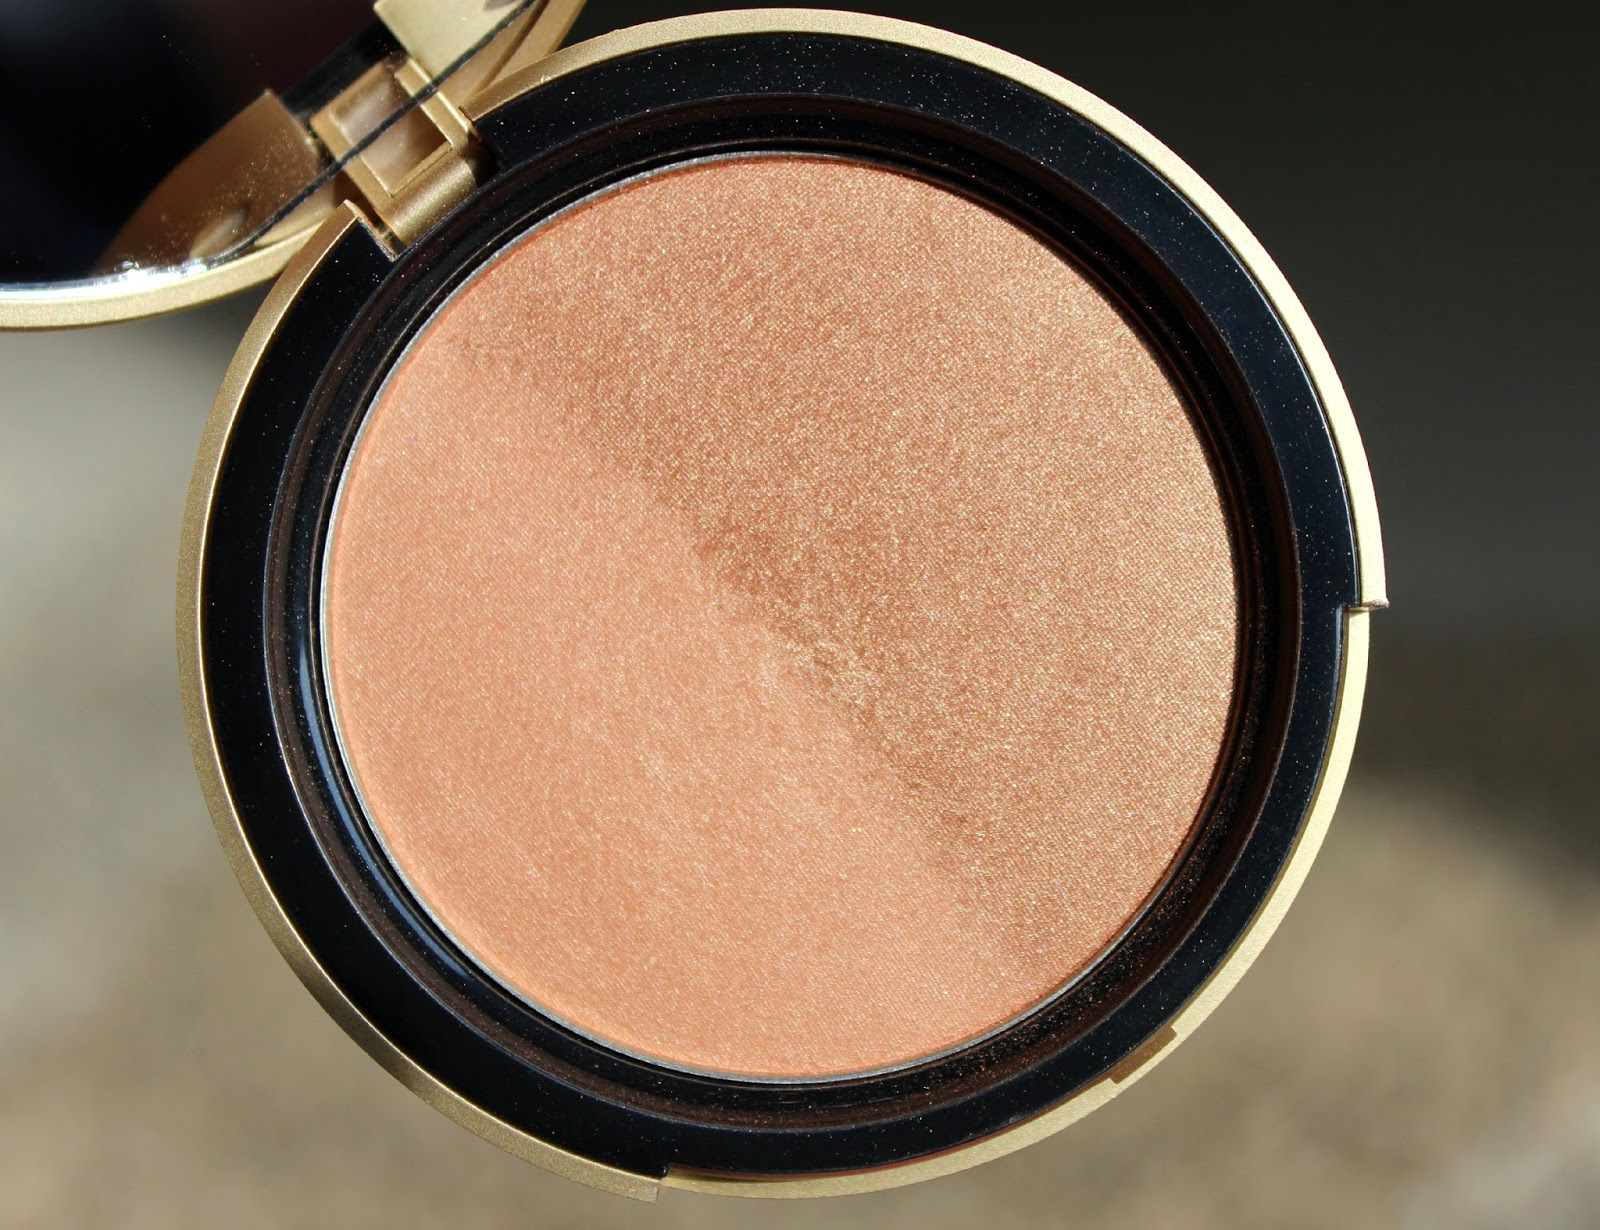 Too Faced Sun Bunny Natural Bronzer Review & Swatches